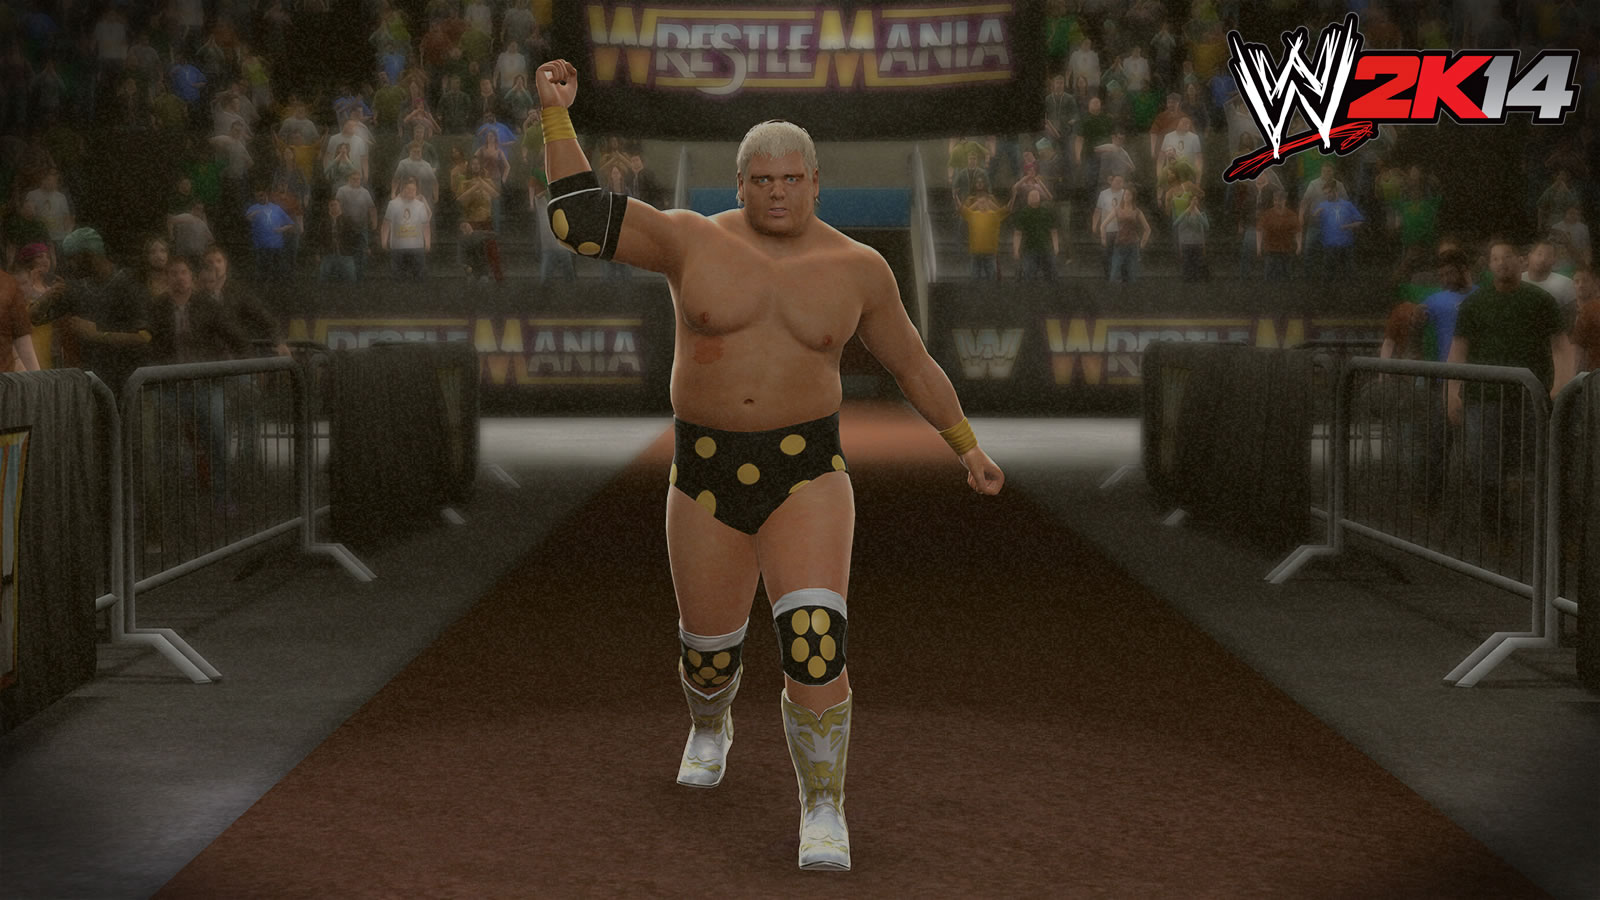 Dusty_Rhodes_1_101813SCFV.jpg